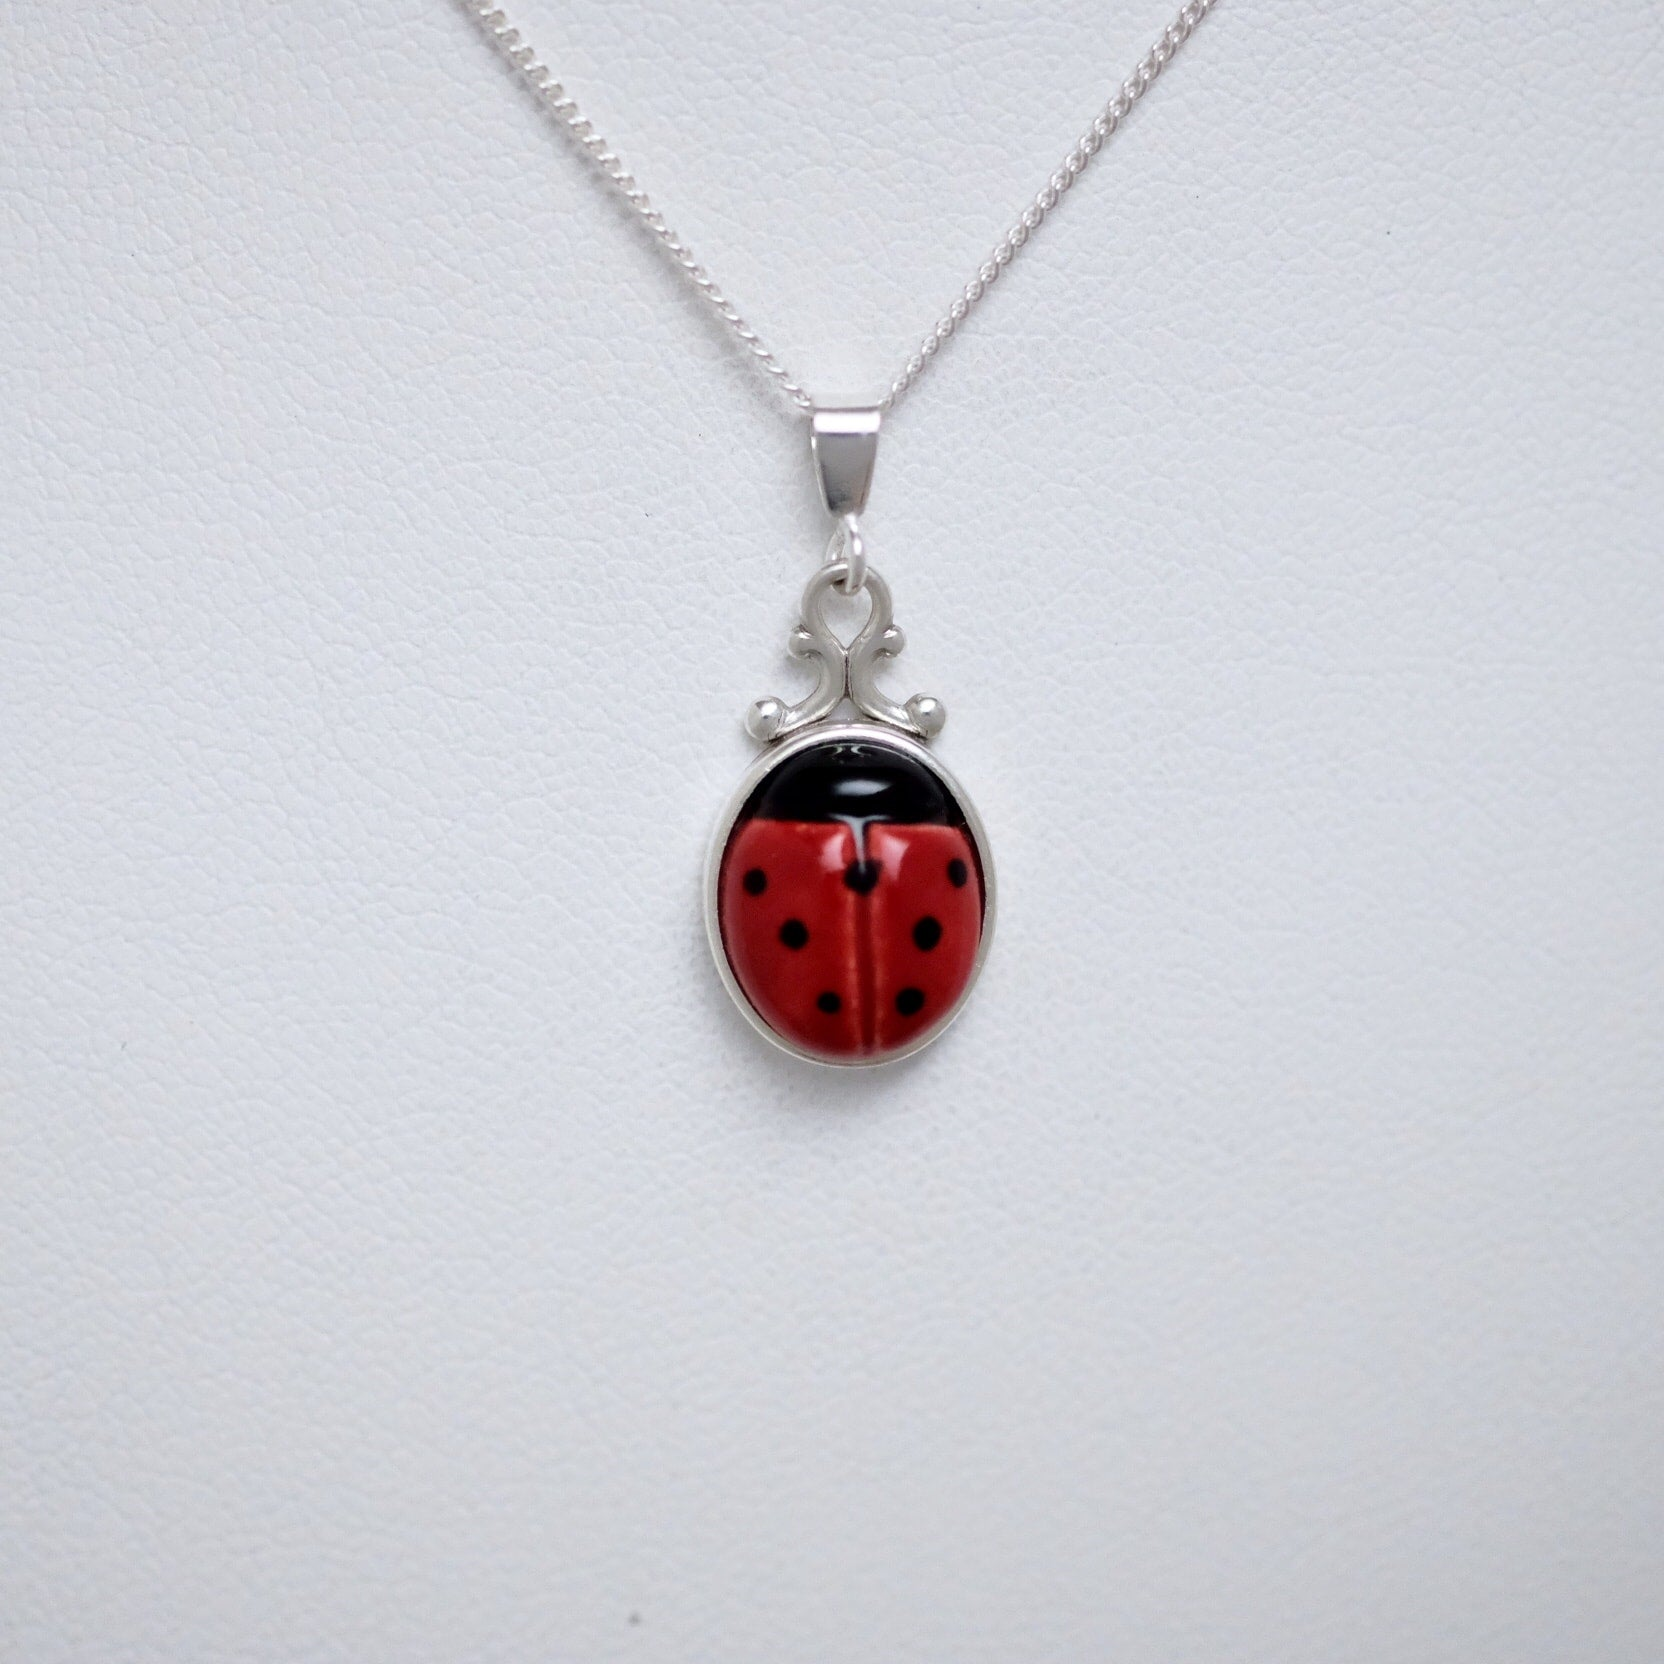 Porcelain ladybug with silver base (small pendant) by Joseph Chiang